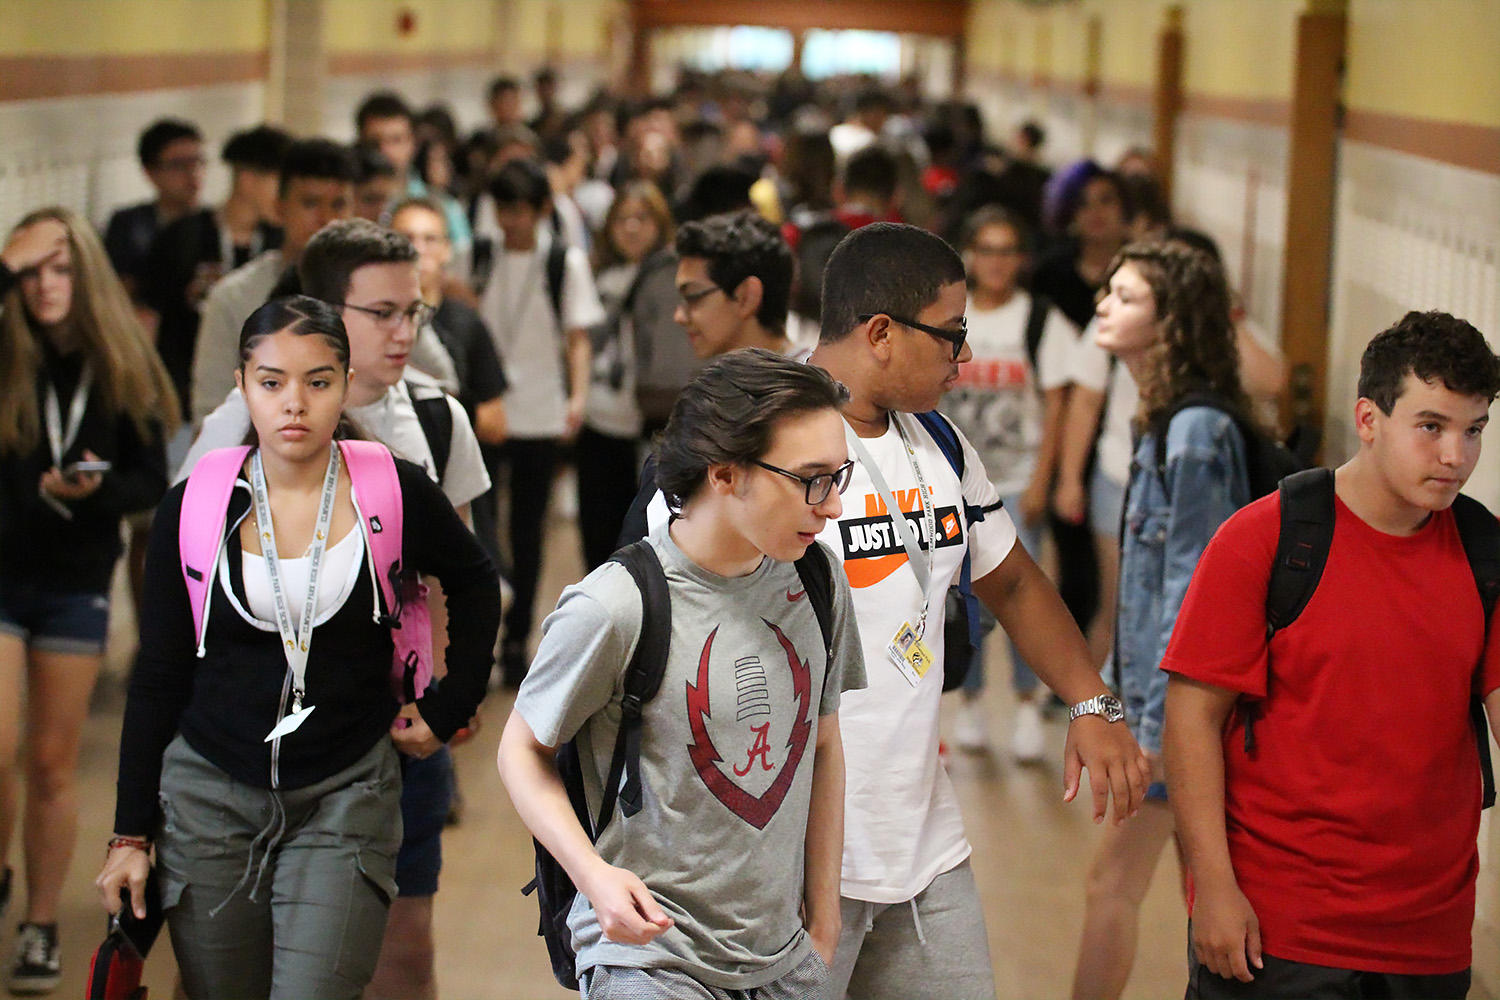 EPHS students walk in the school hallways between classes.